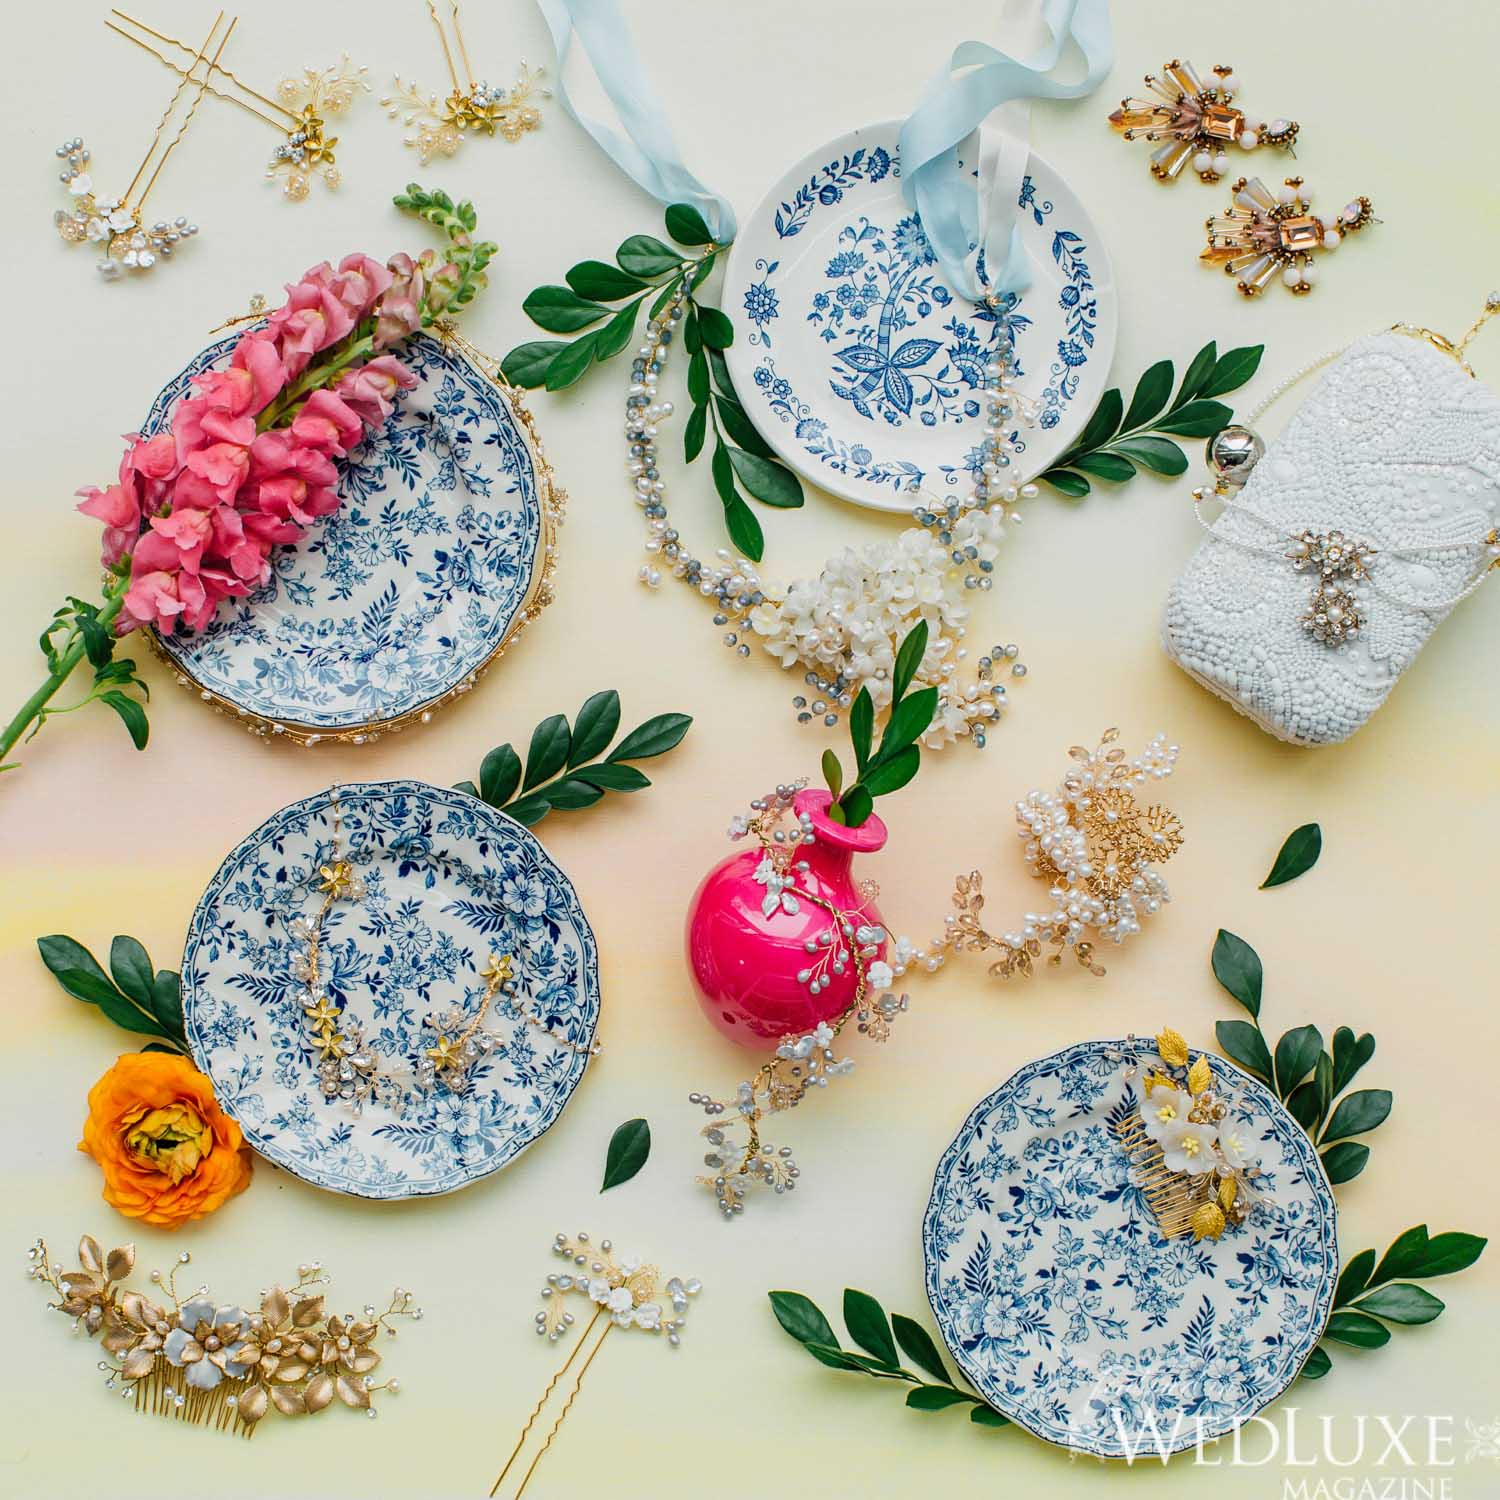 Table Decor - Dance Floor Decor, Plates - Plate Occasions